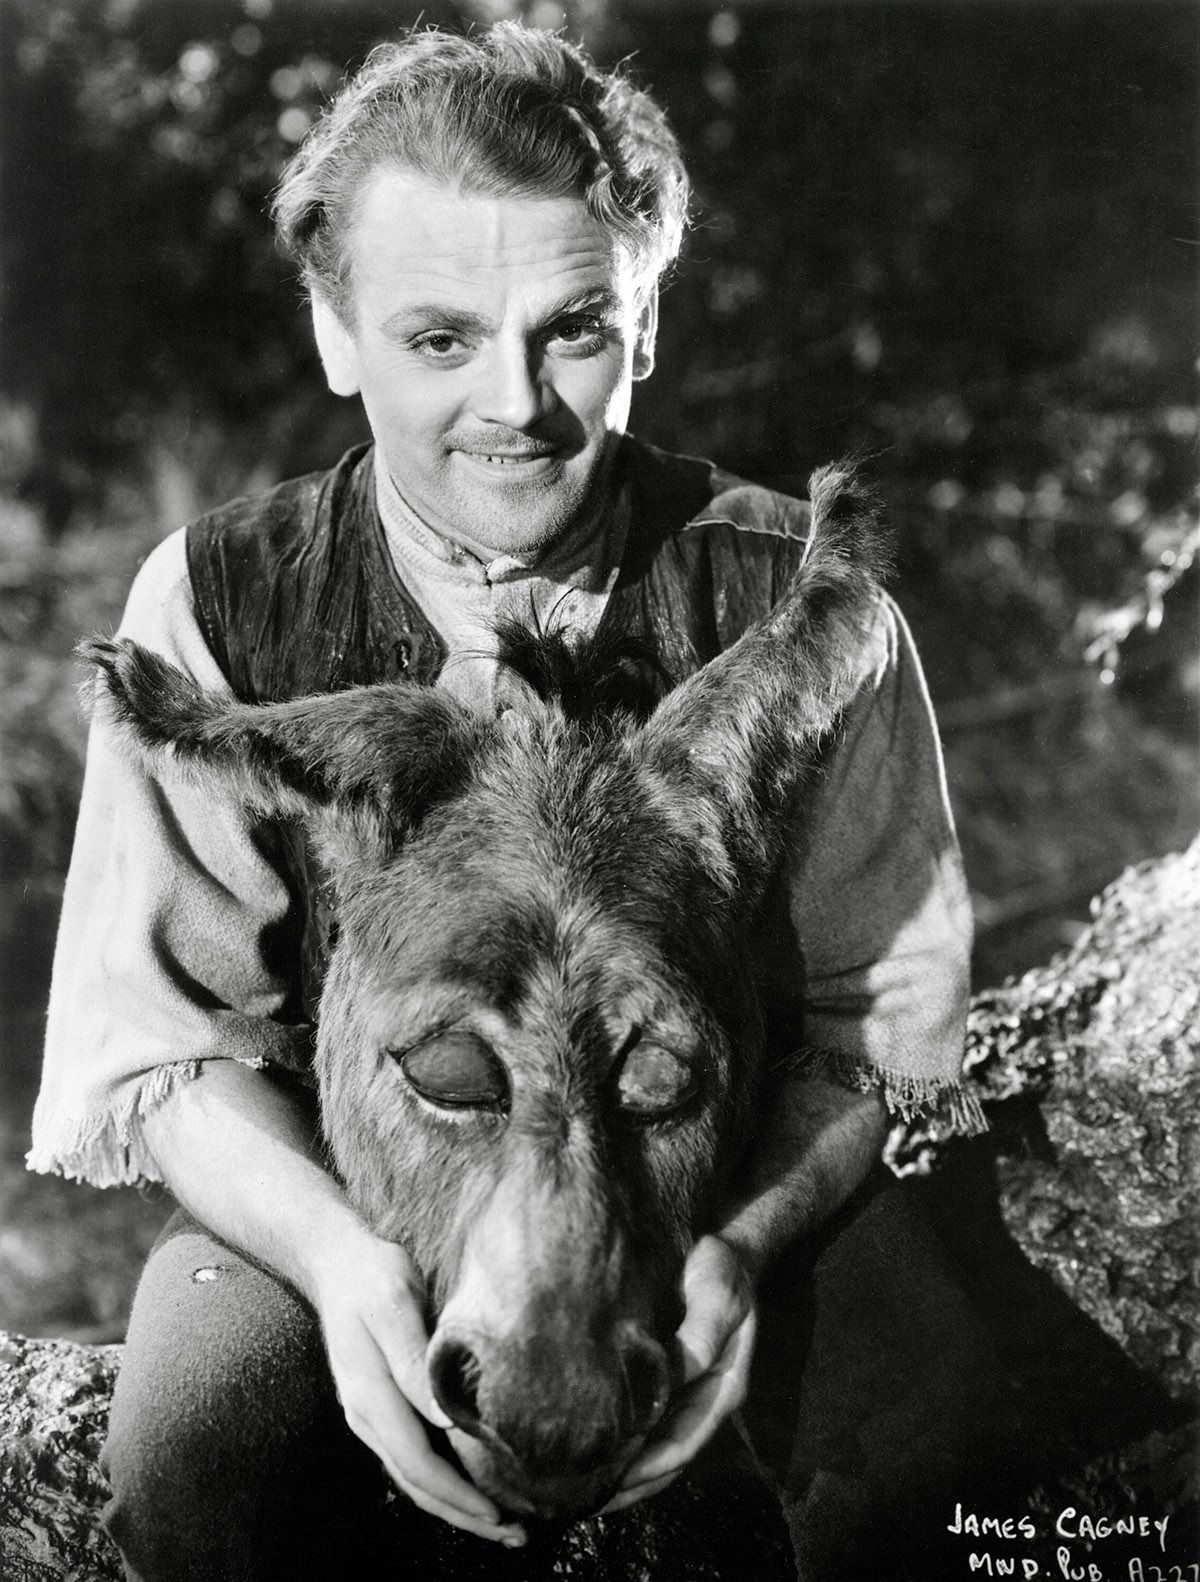 James Cagney is Bottom, the weaver, in A MIDSUMMER NIGHT'S DREAM ('35)